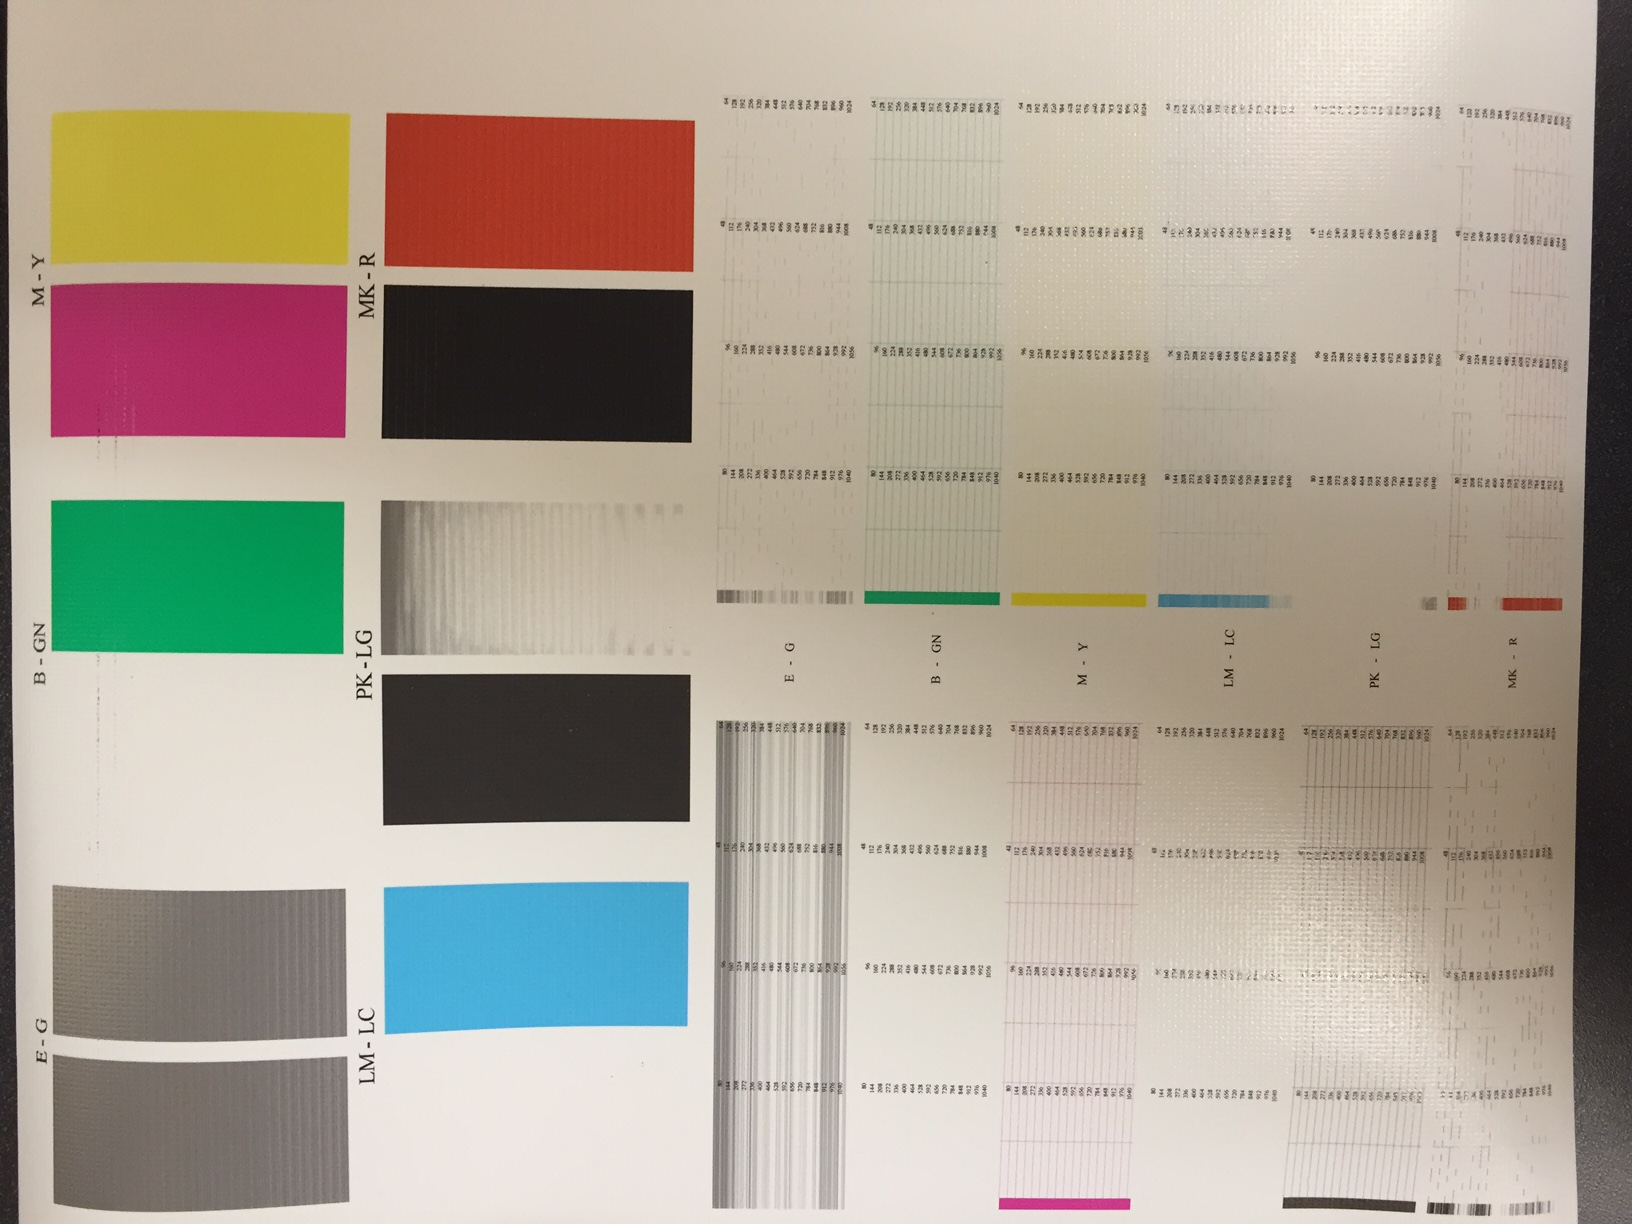 Printer not printing color hp - Printer Is Showing All Inks At High Levels